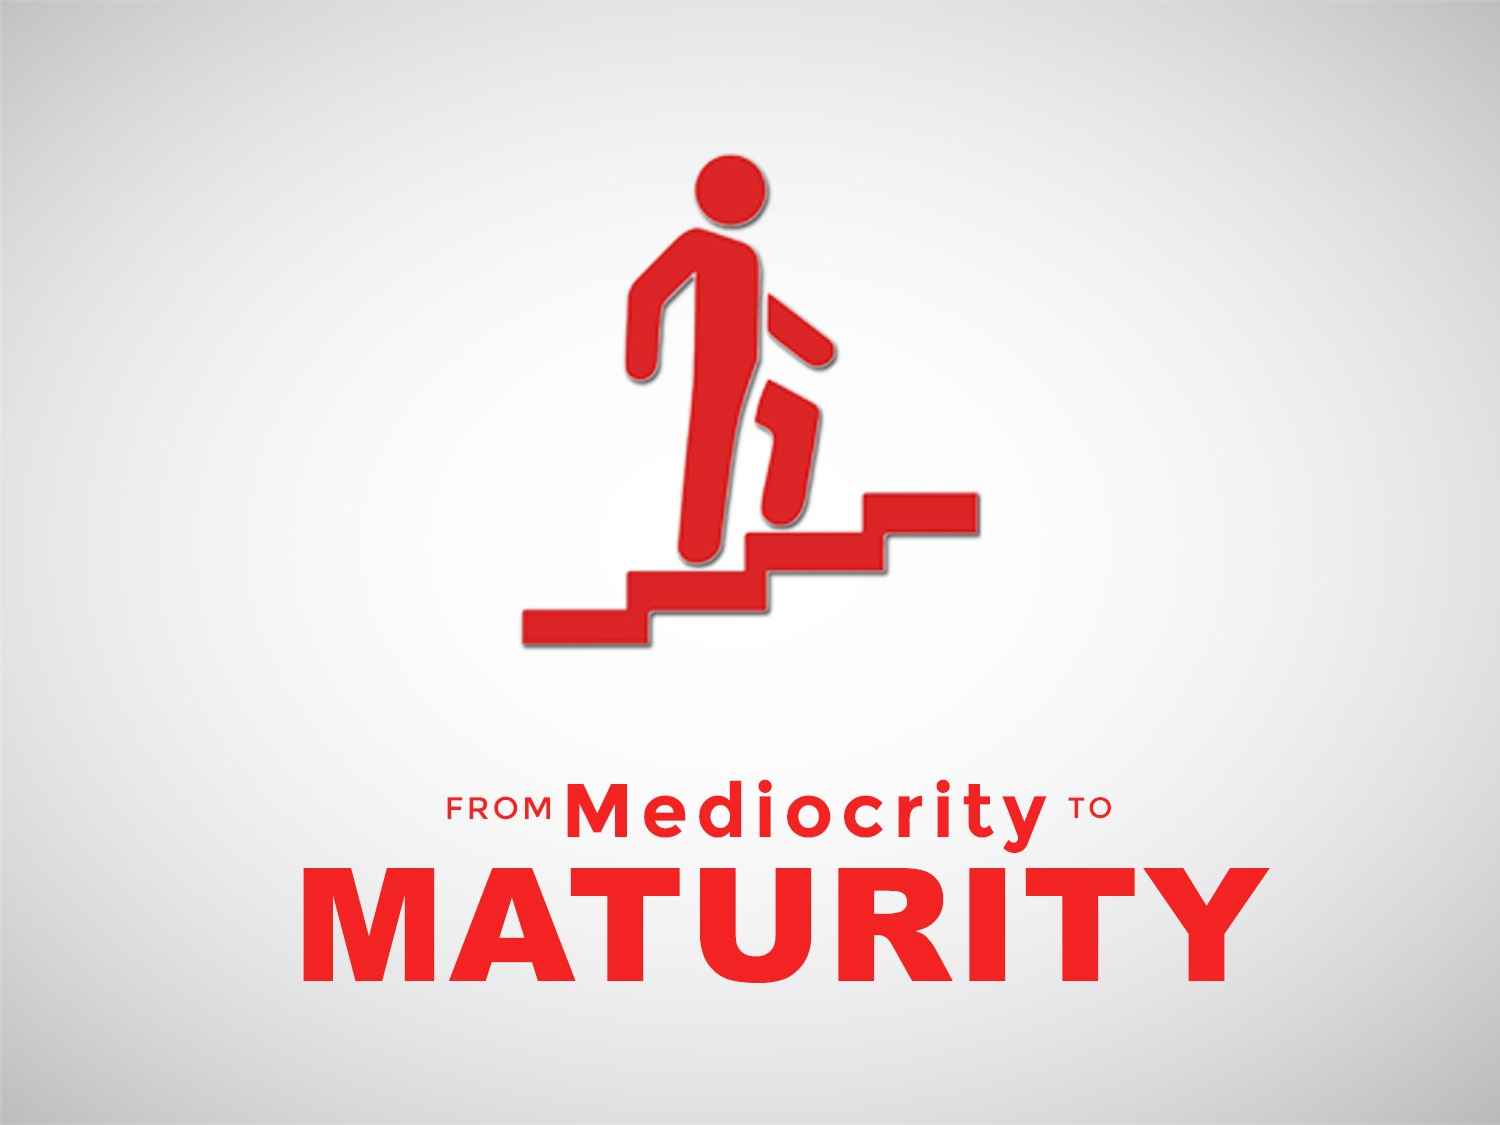 mediocrity-to-maturity-4-1